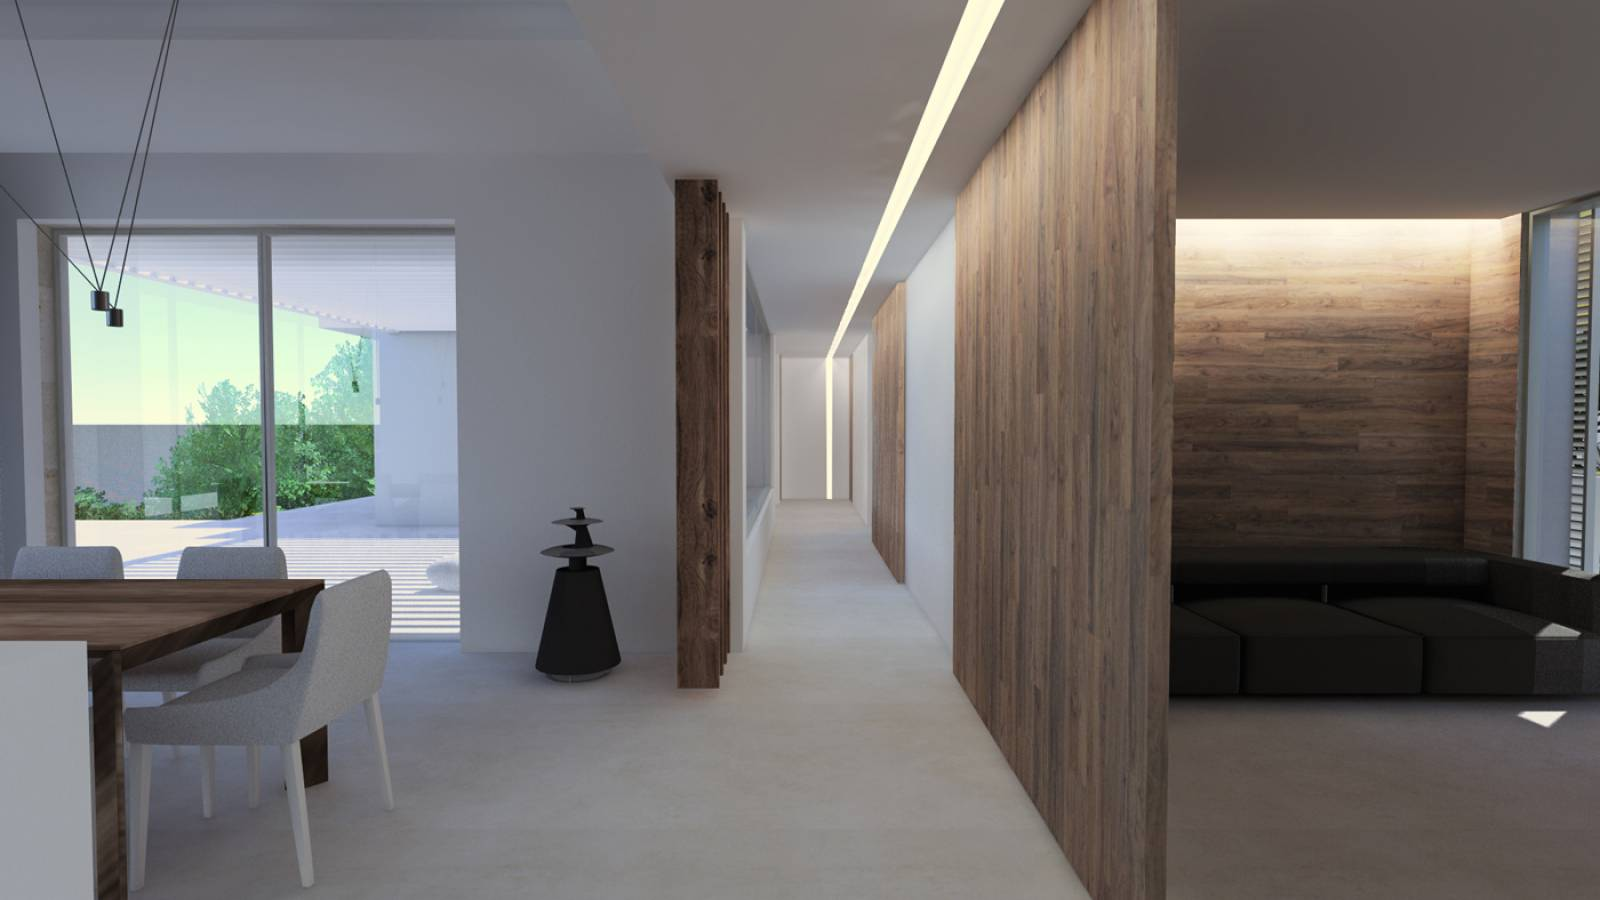 Architecture int rieure de la villa contemporaine e for Interieur villa